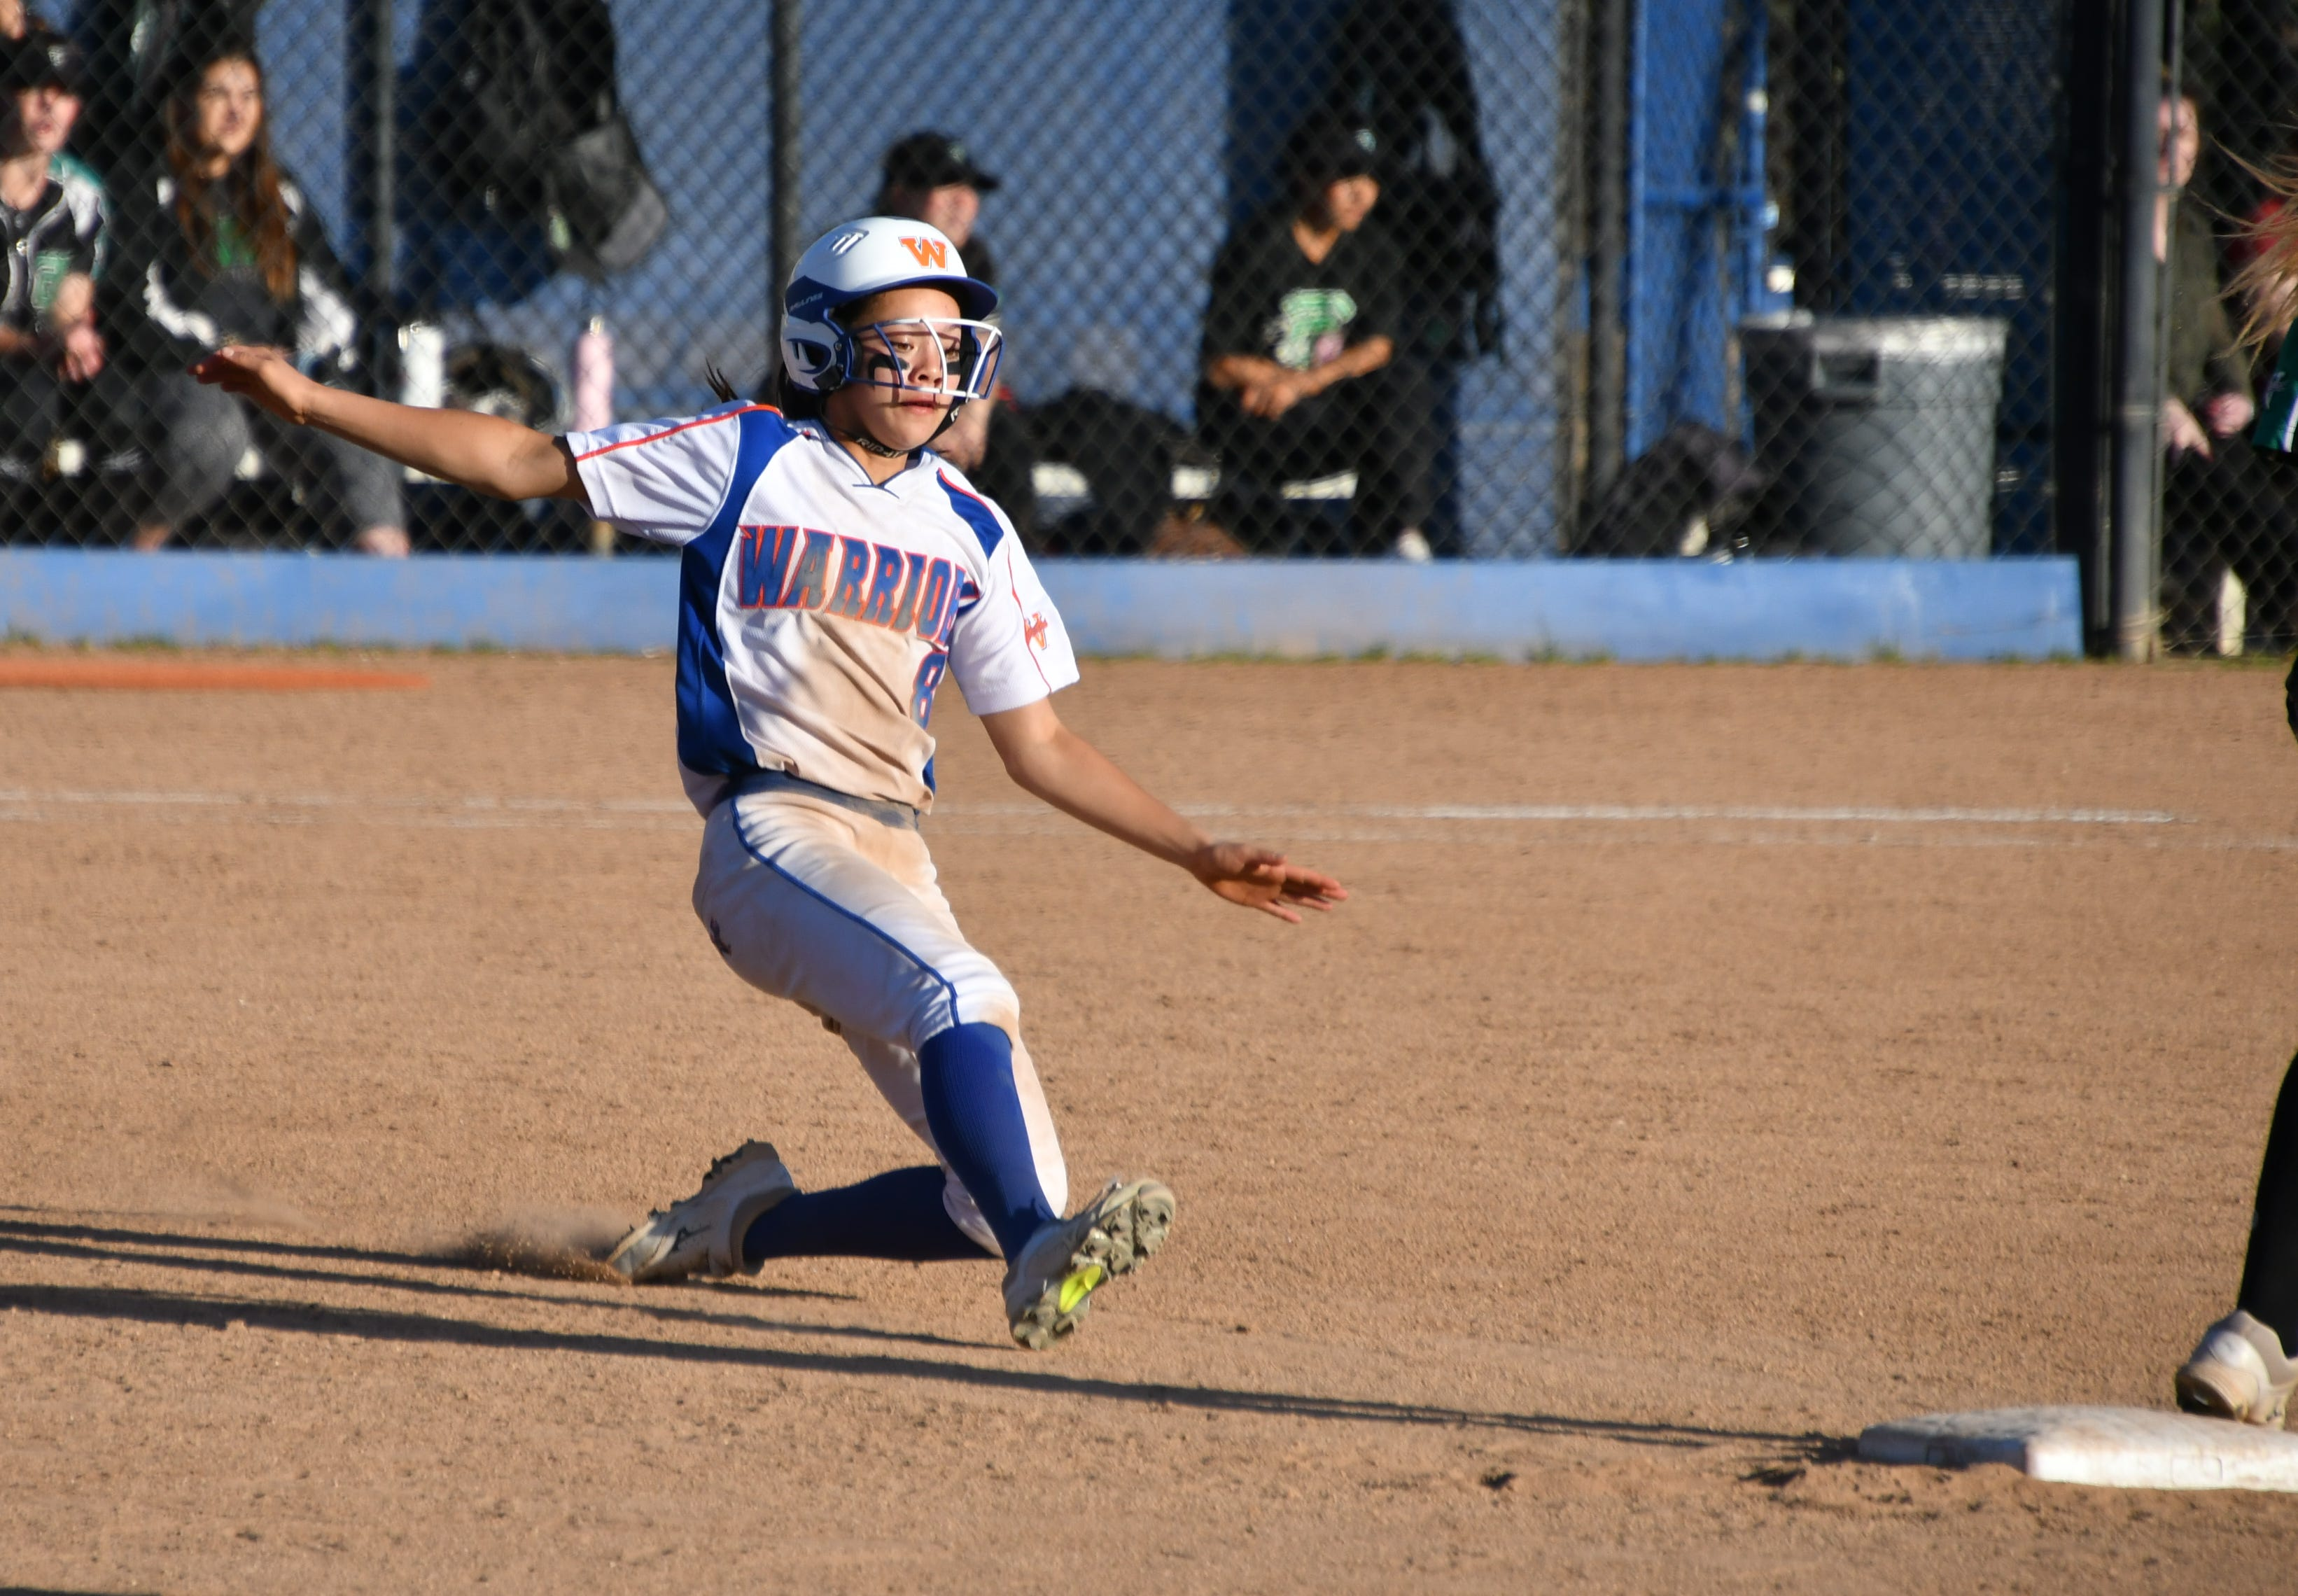 Westlake High freshman Emily Jones slides into second base against visiting Thousand Oaks on Thursday afternoon. Thousand Oaks won, 10-4, in 10 innings.